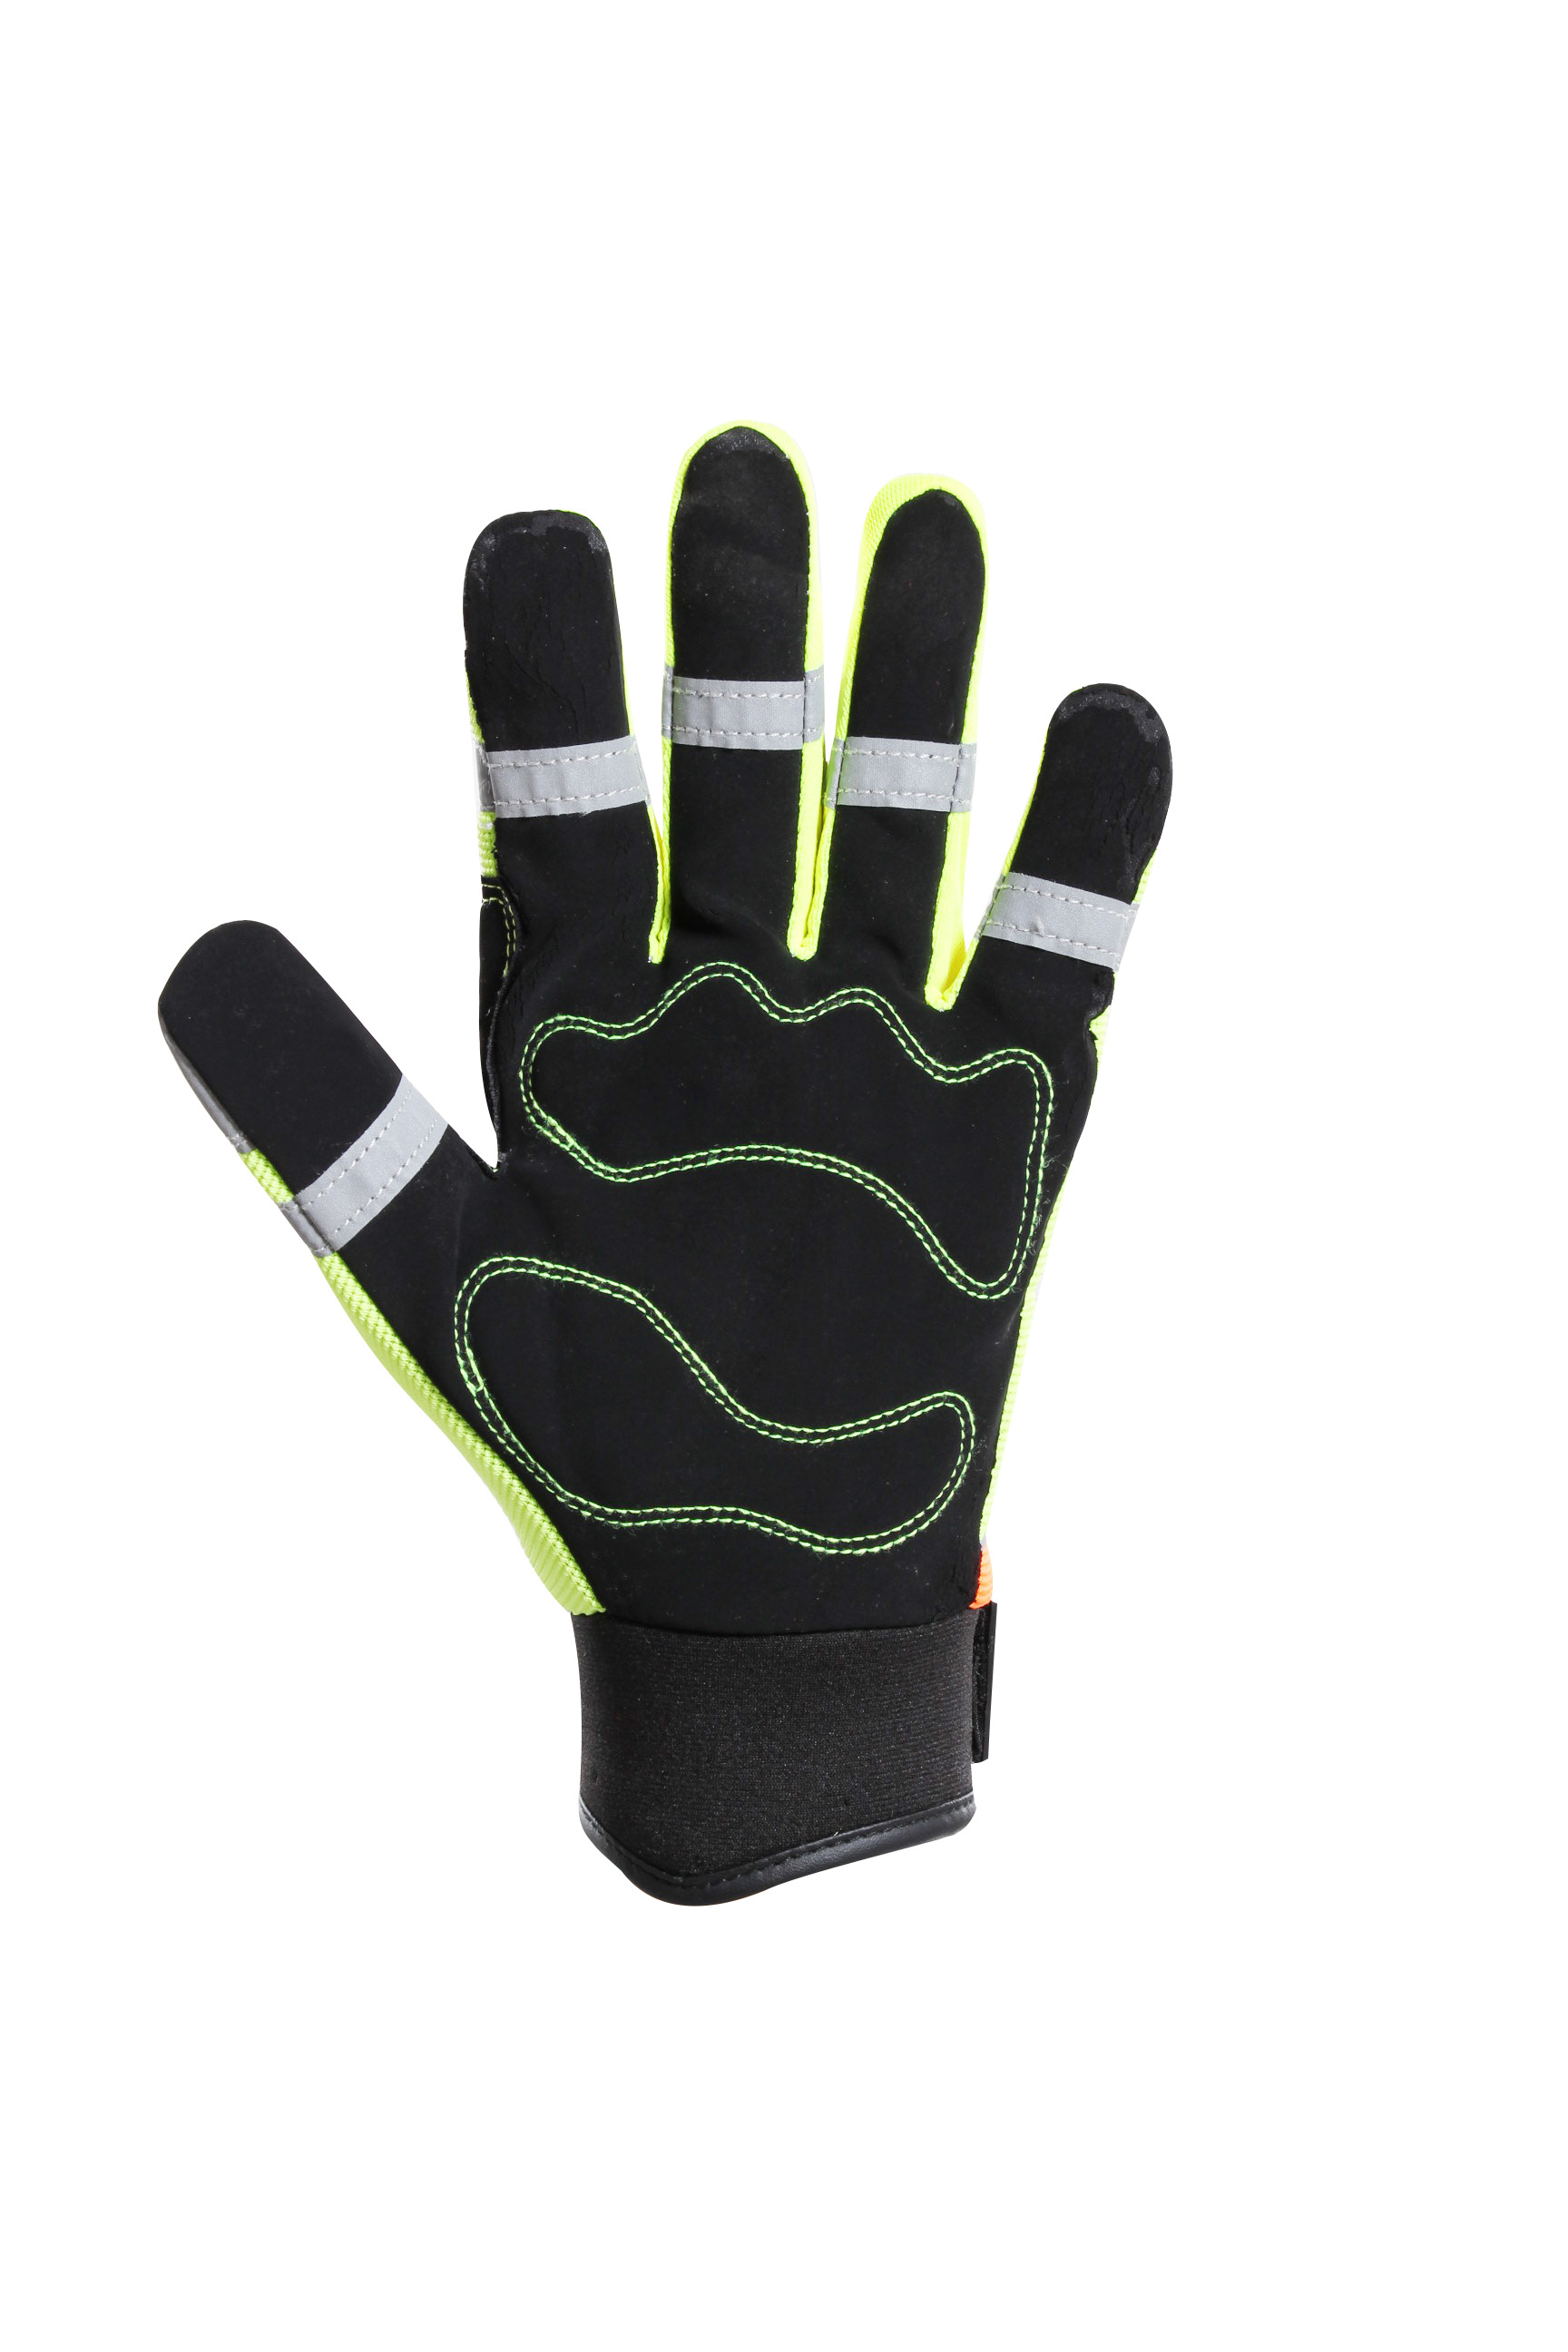 finger protect cycling gloves